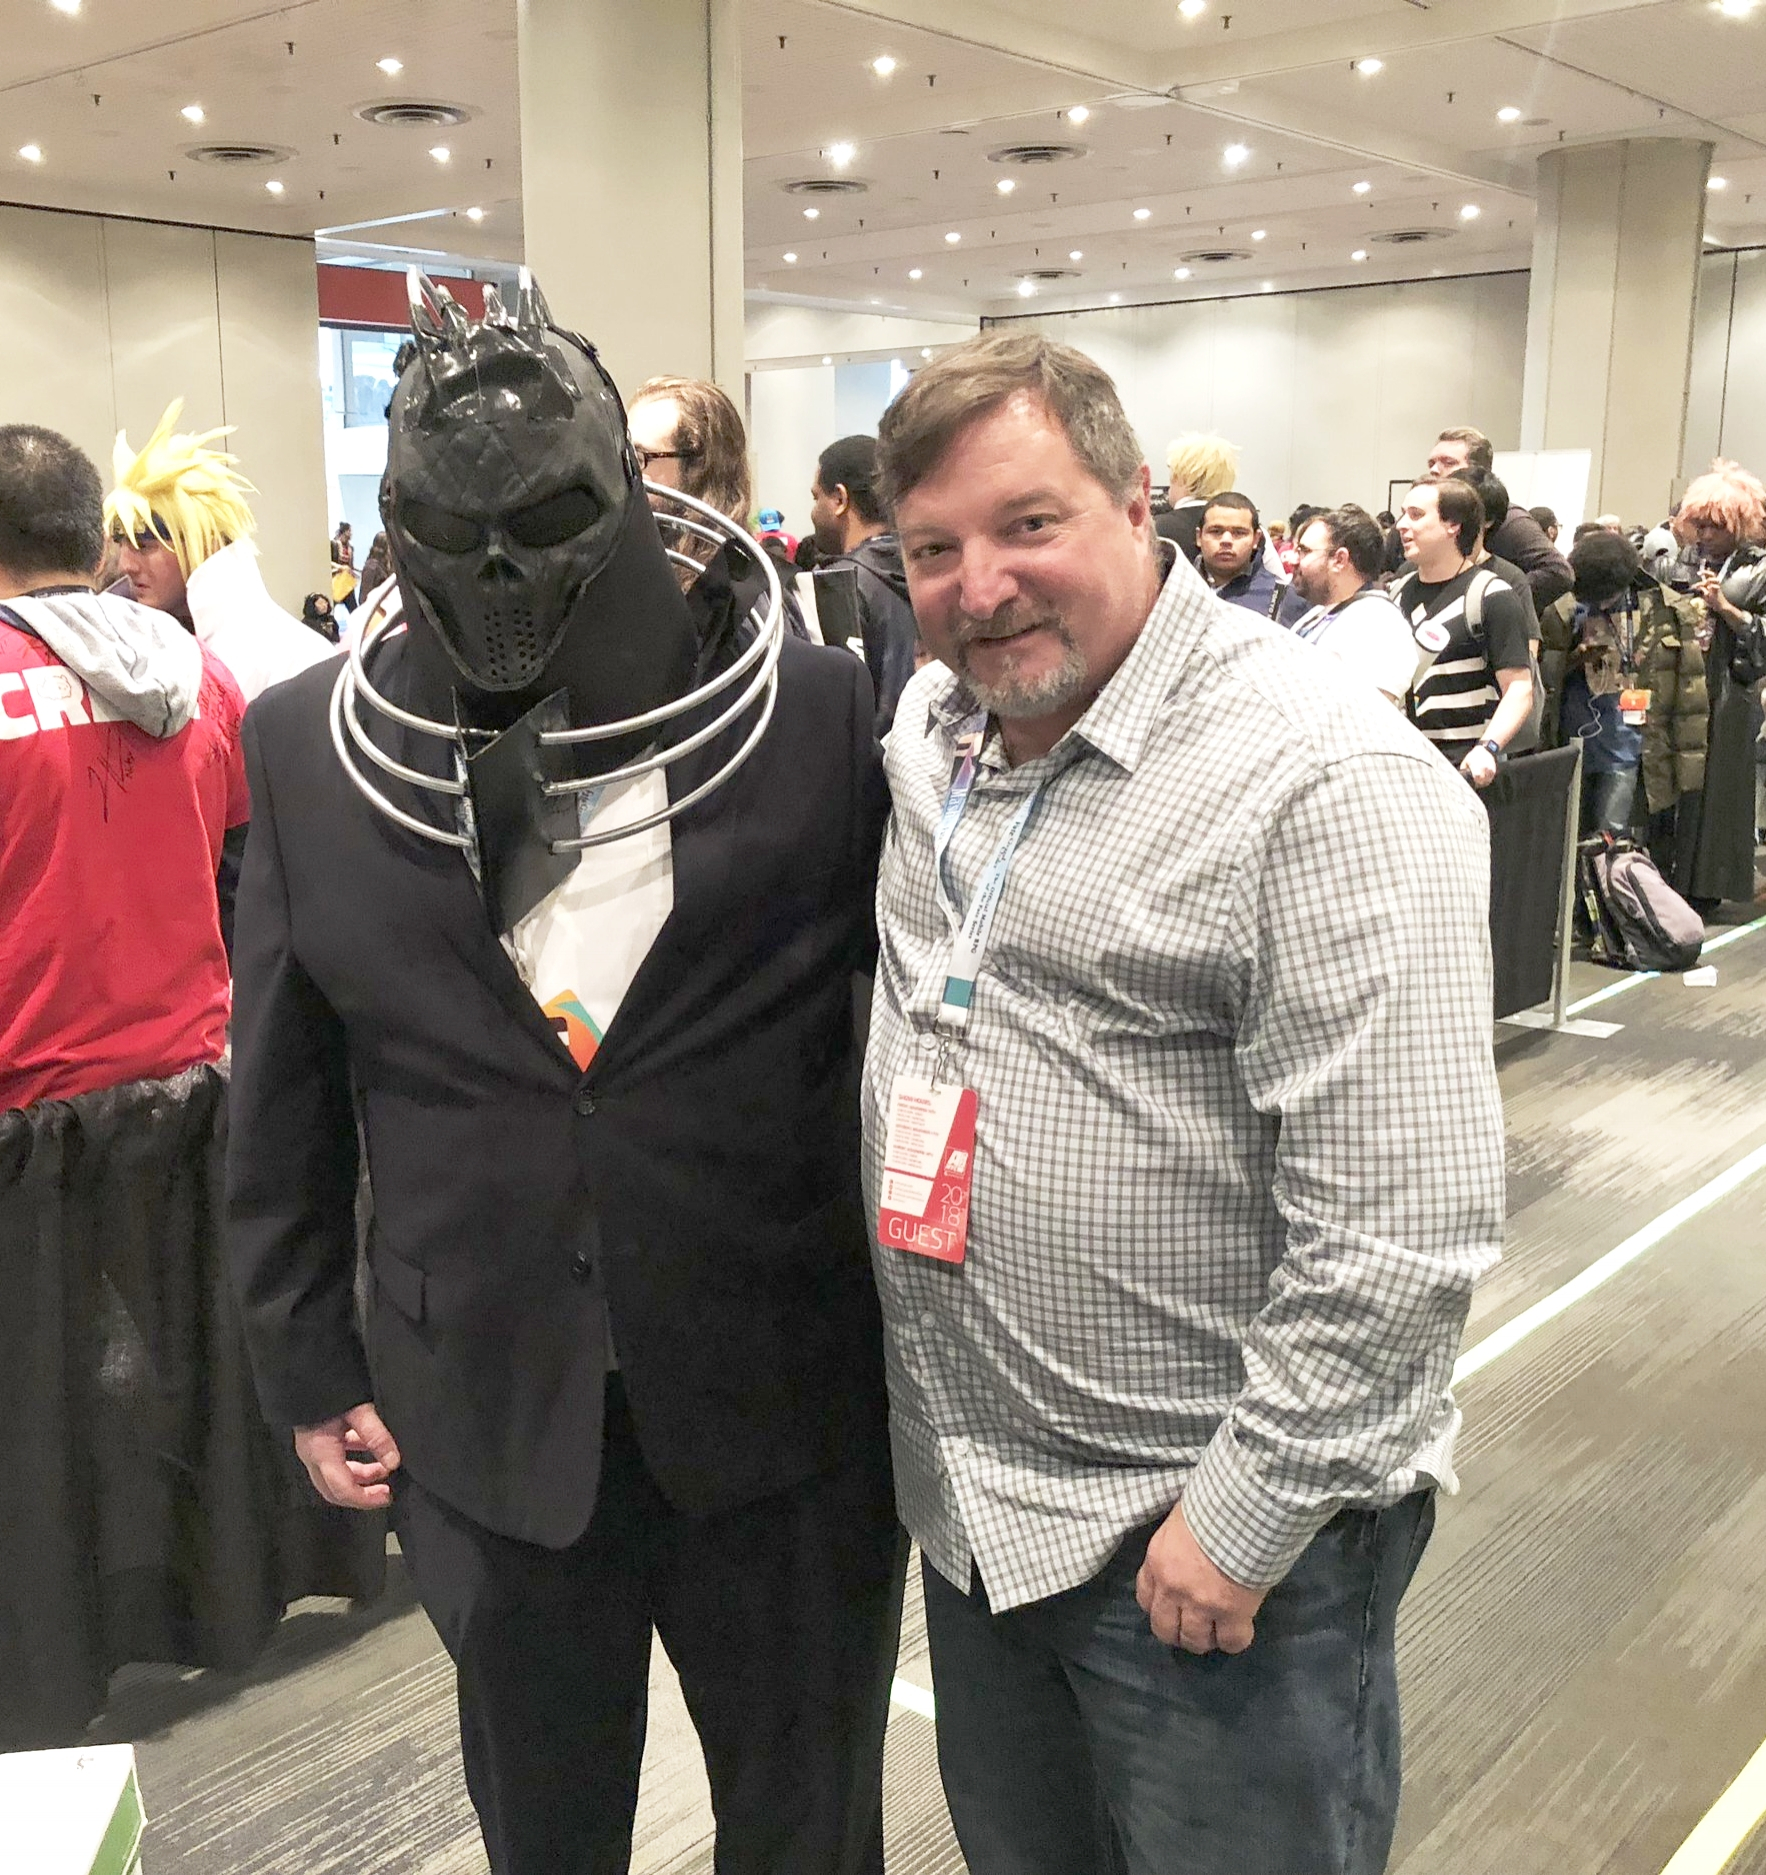 Me with the voice actor of All For One: John Swasey